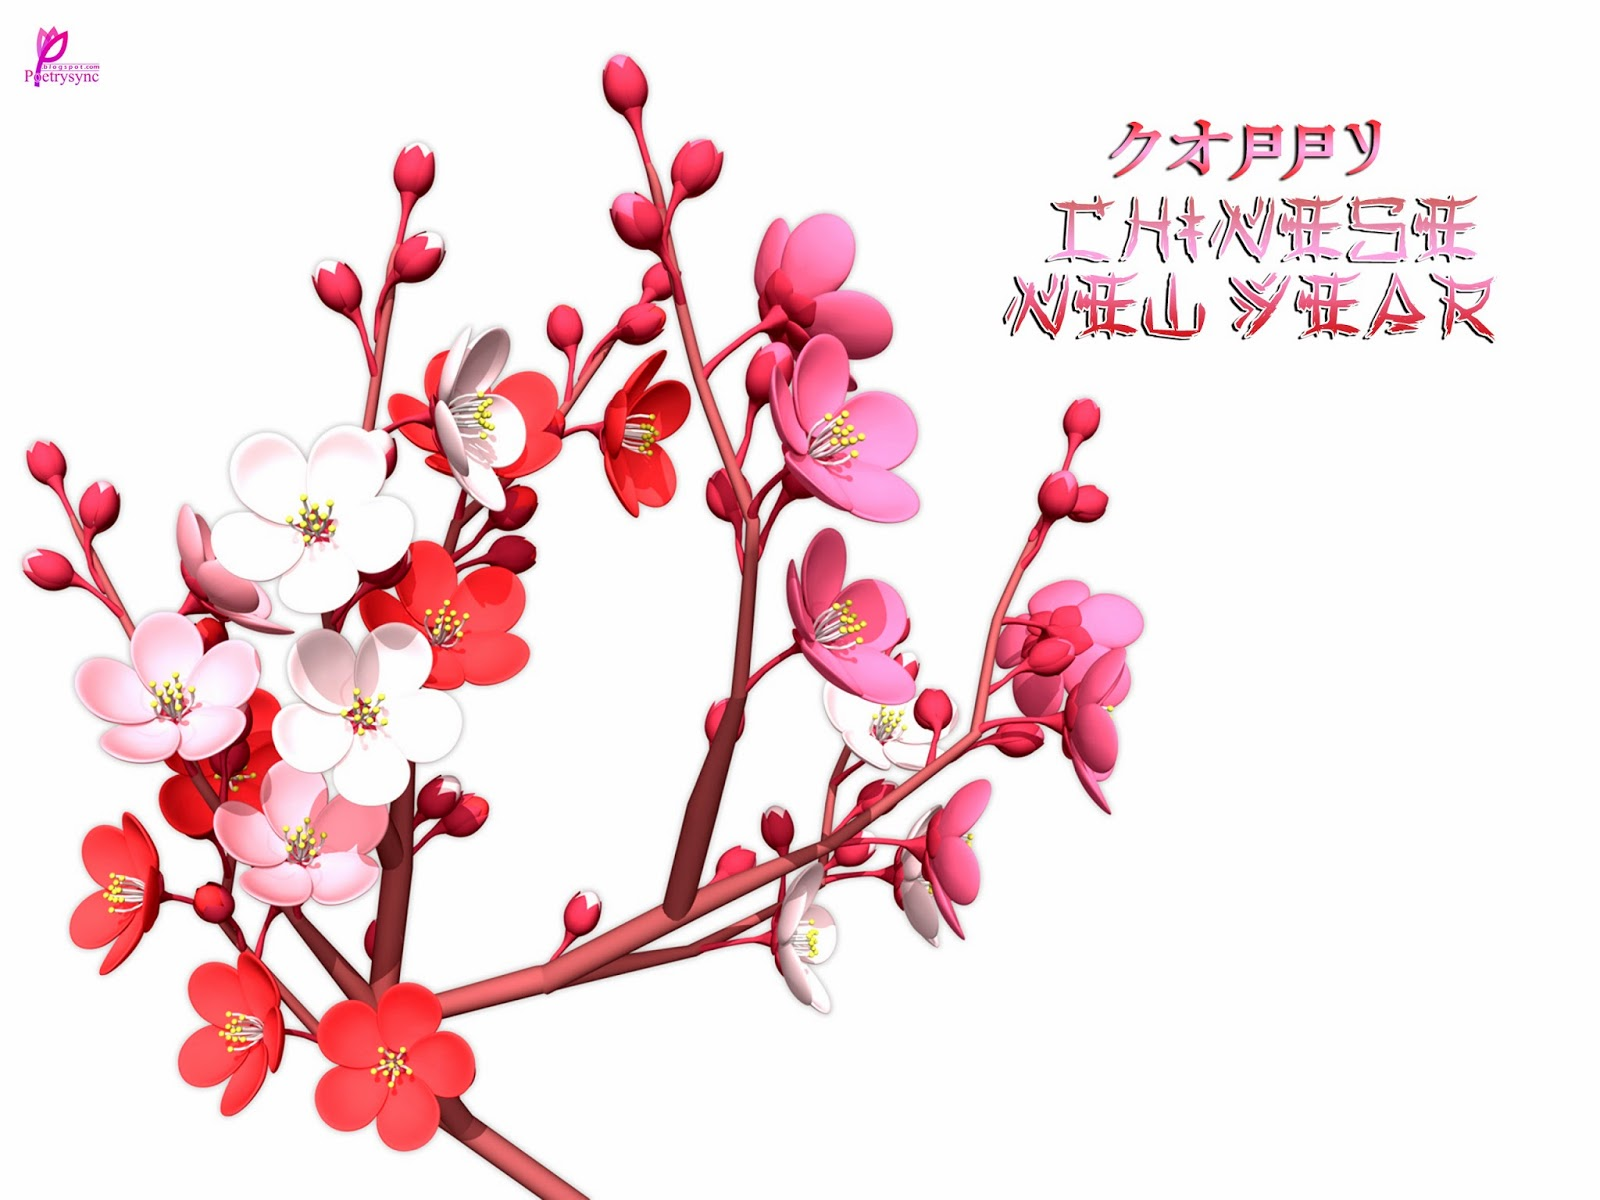 Flower Chinese New Year Wallpaper Flowers Healthy